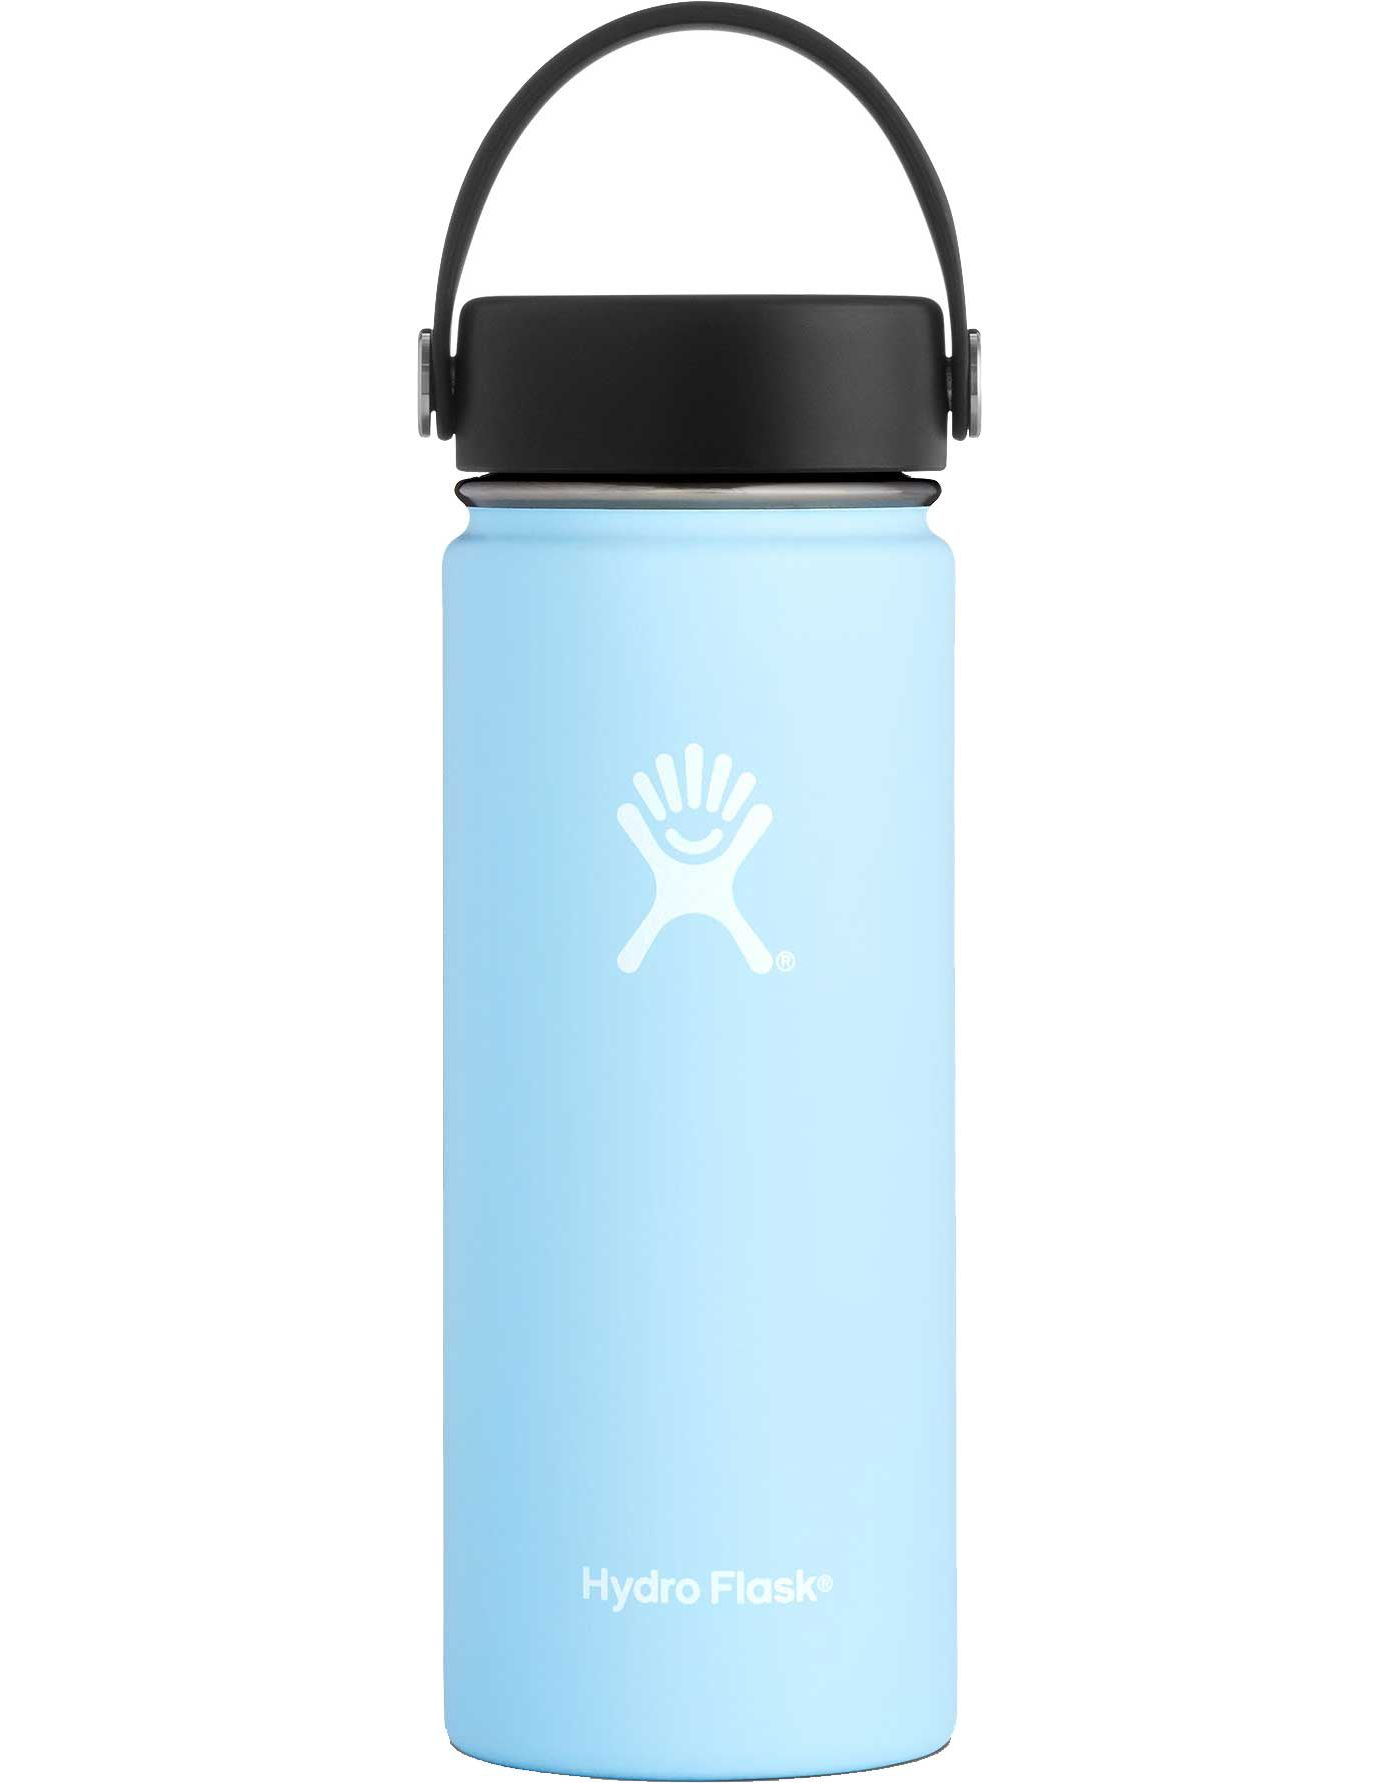 Hydro Flask Wide Mouth 18 oz. Bottle